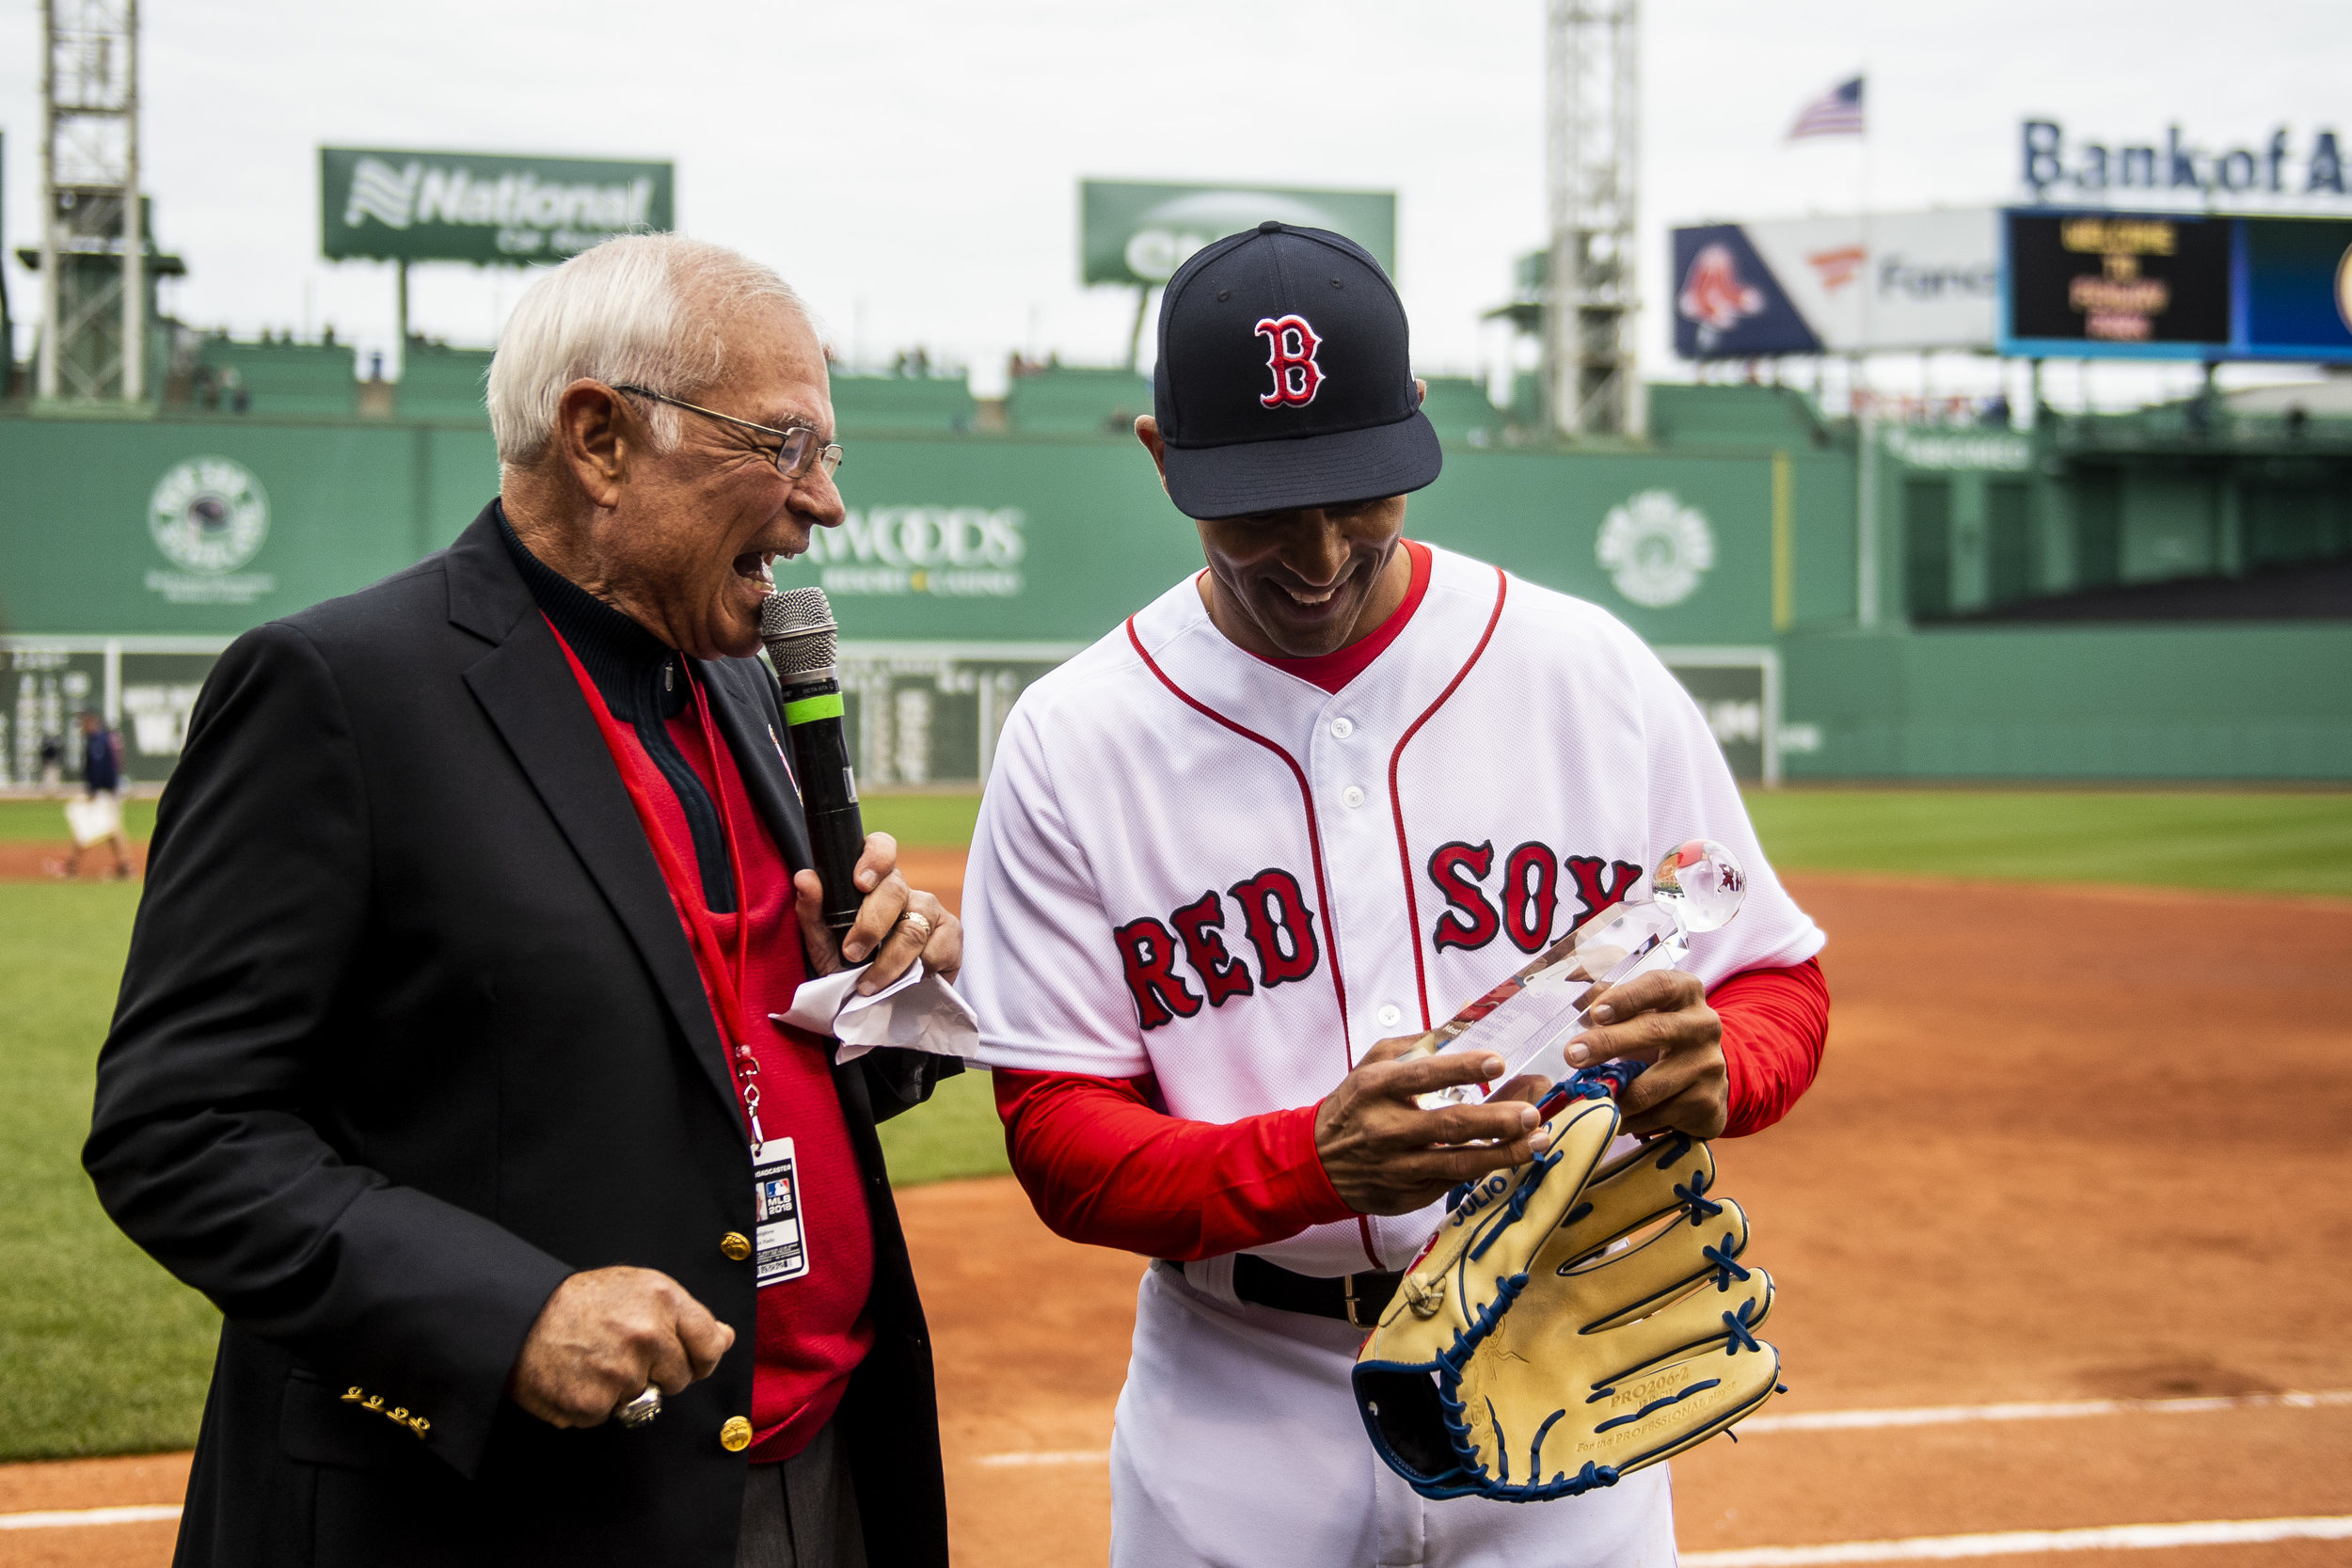 May 27, 2018, Boston, MA: Julio Lugo is presented with the MVP award at the Red Sox Alumni Game at Fenway Park in Boston, Massachusetts on Sunday, May 27, 2018. (Photo by Matthew Thomas/Boston Red Sox)